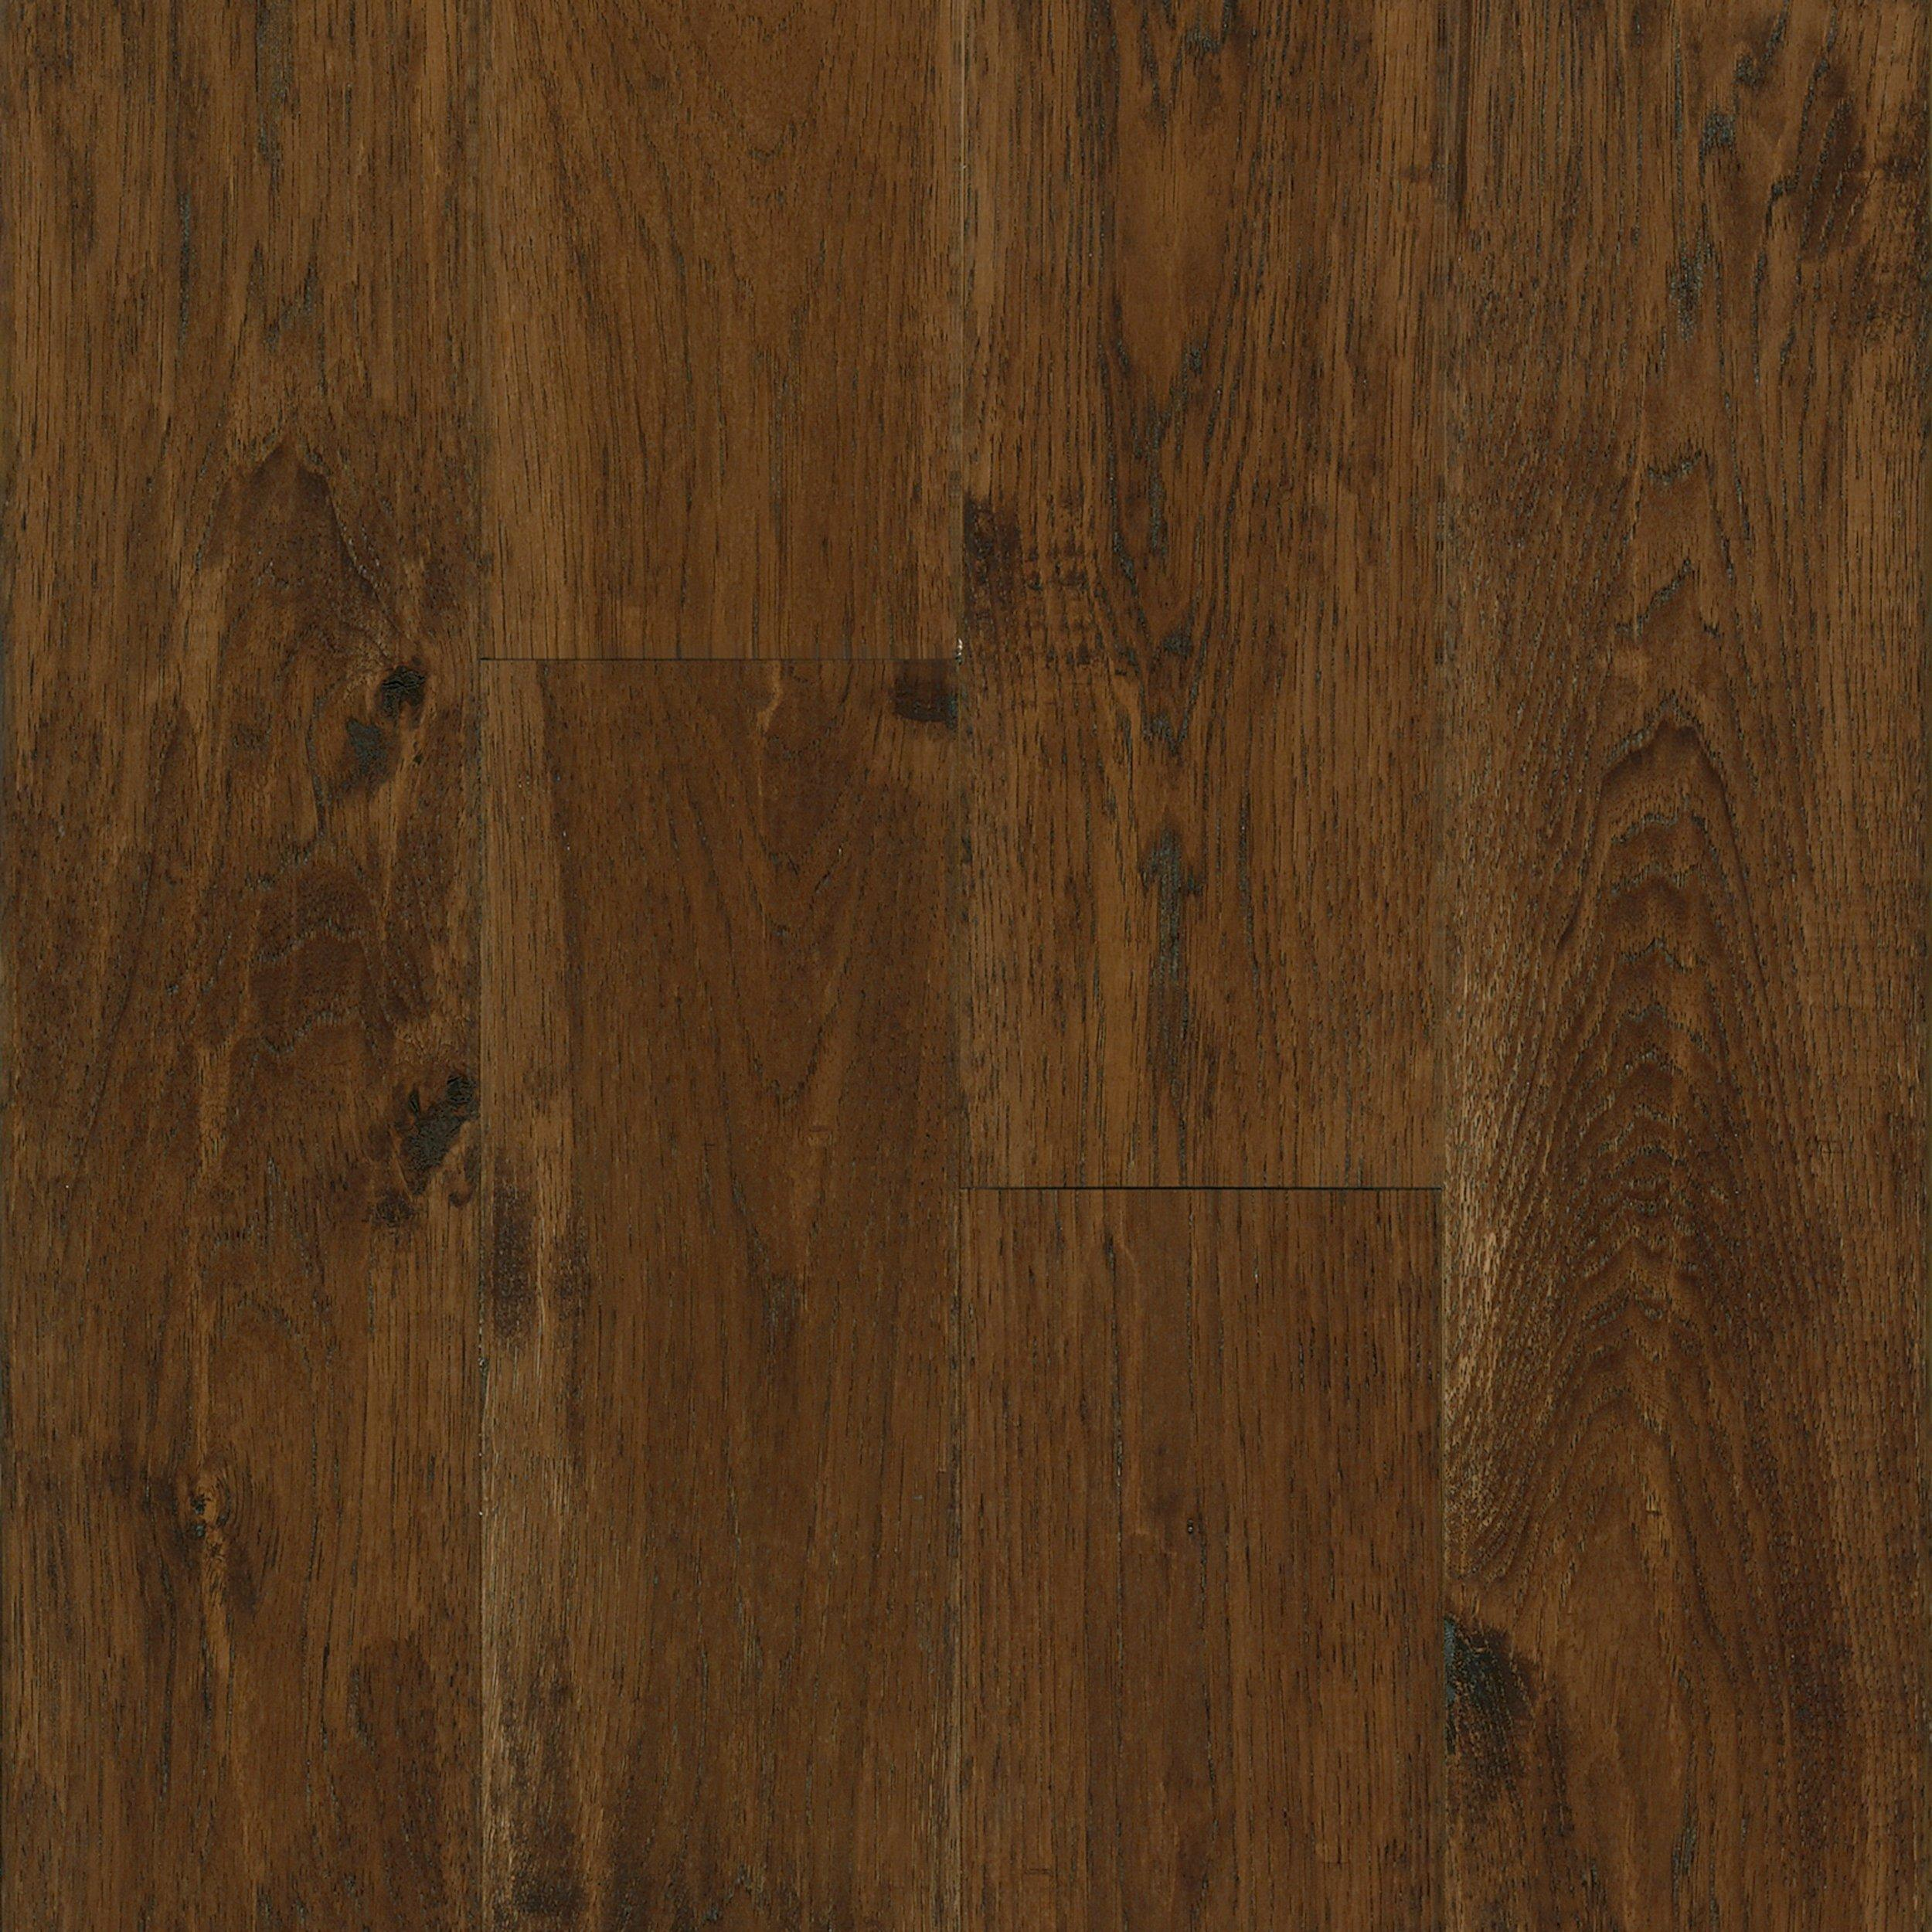 cider hickory hand scraped solid hardwood 34in x 3 14in floor and decor - Hand Scraped Hardwood